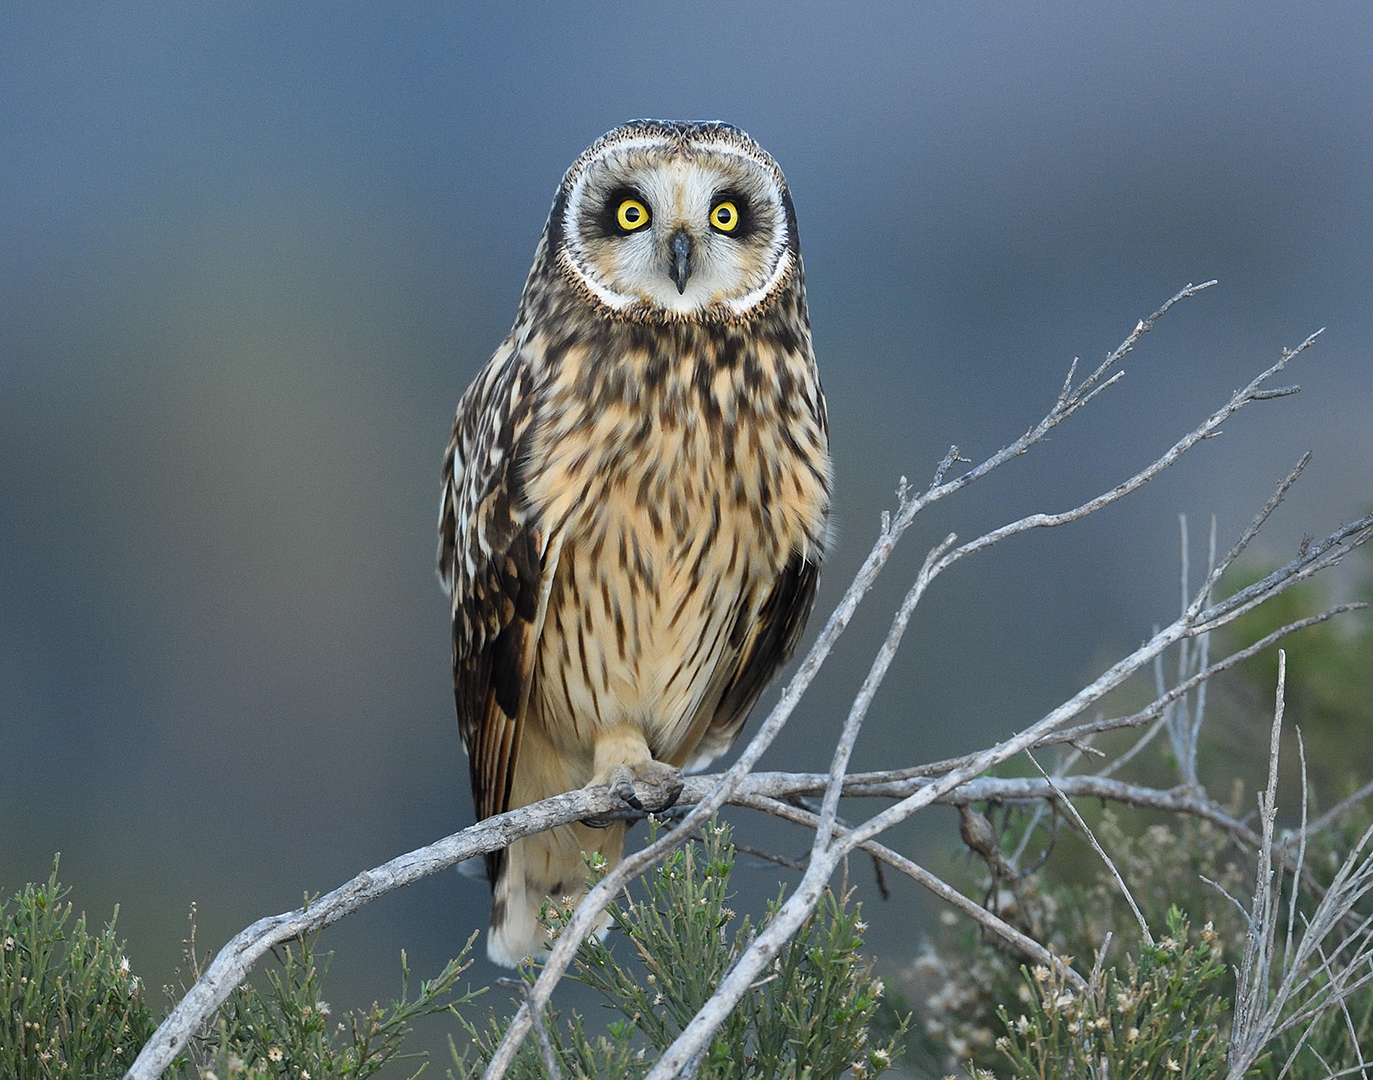 Short-eared Owl At Dusk By Debbie Beals